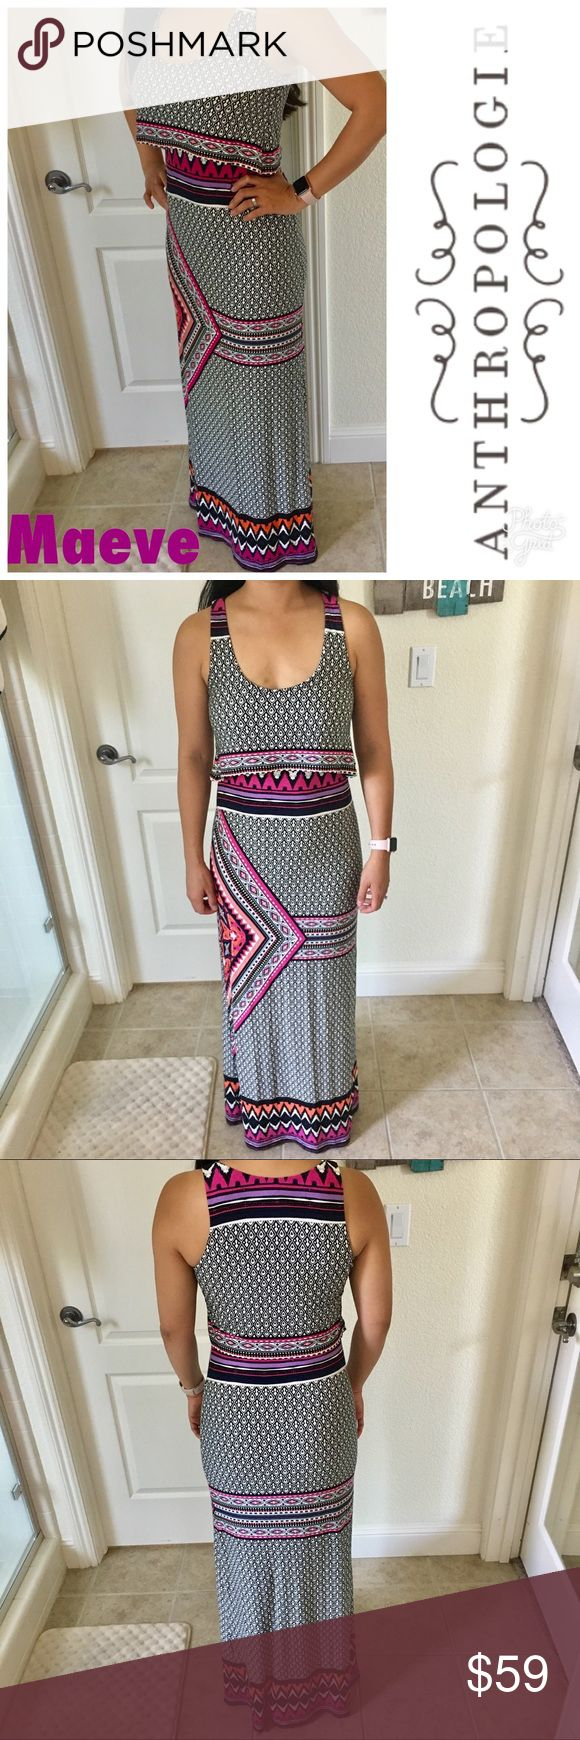 """Maeve for Anthro Tiered Aztec Tribal Maxi Dress XS Maeve for Anthro Tiered Top with Aztec Tribal print Maxi Dress in size XS. Fits a size 2 or 4. Measures 57"""" length. Features pops of pink and purple throughout the dress. Made of 95% rayon and 5% spandex. Stretchy. Smoke free and pet free home. No trades or modeling. Bundle to save. Offers welcome! Fast shipping. Anthropologie Dresses Maxi"""